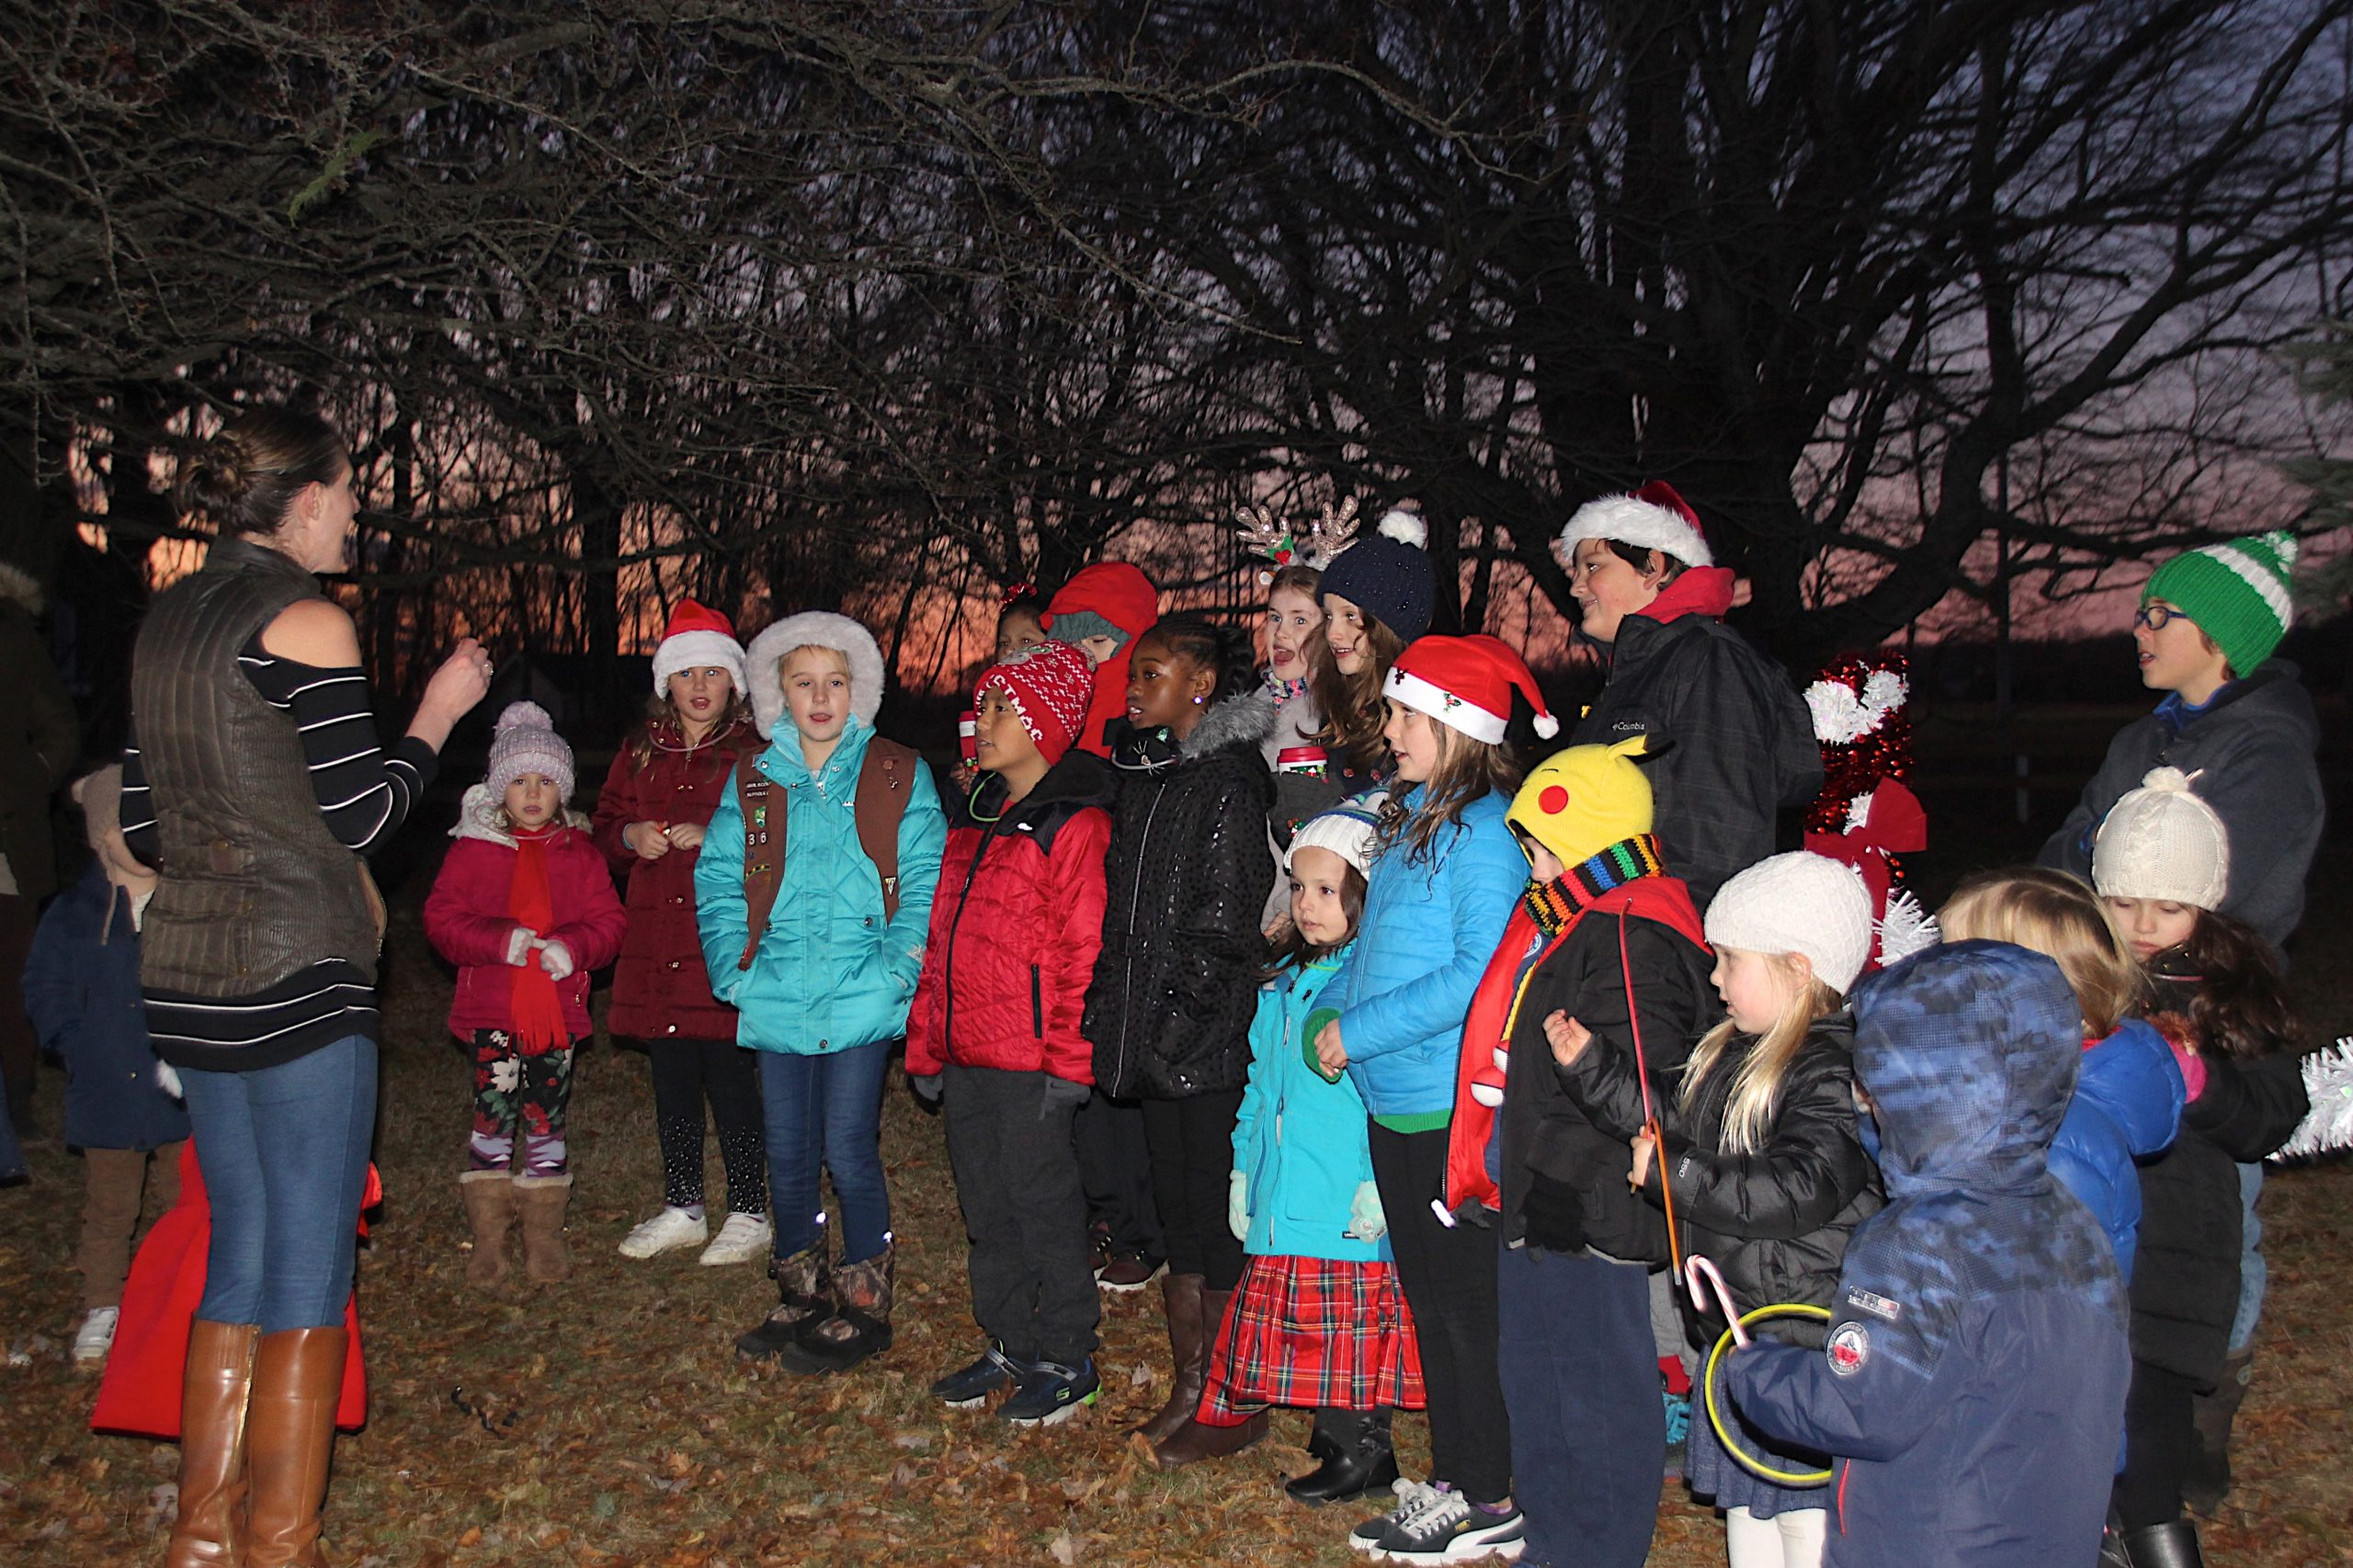 There were carols and cheer at the tree lighting party at the Amagansett Fire Department on Saturday. KYRIL BROMLEY